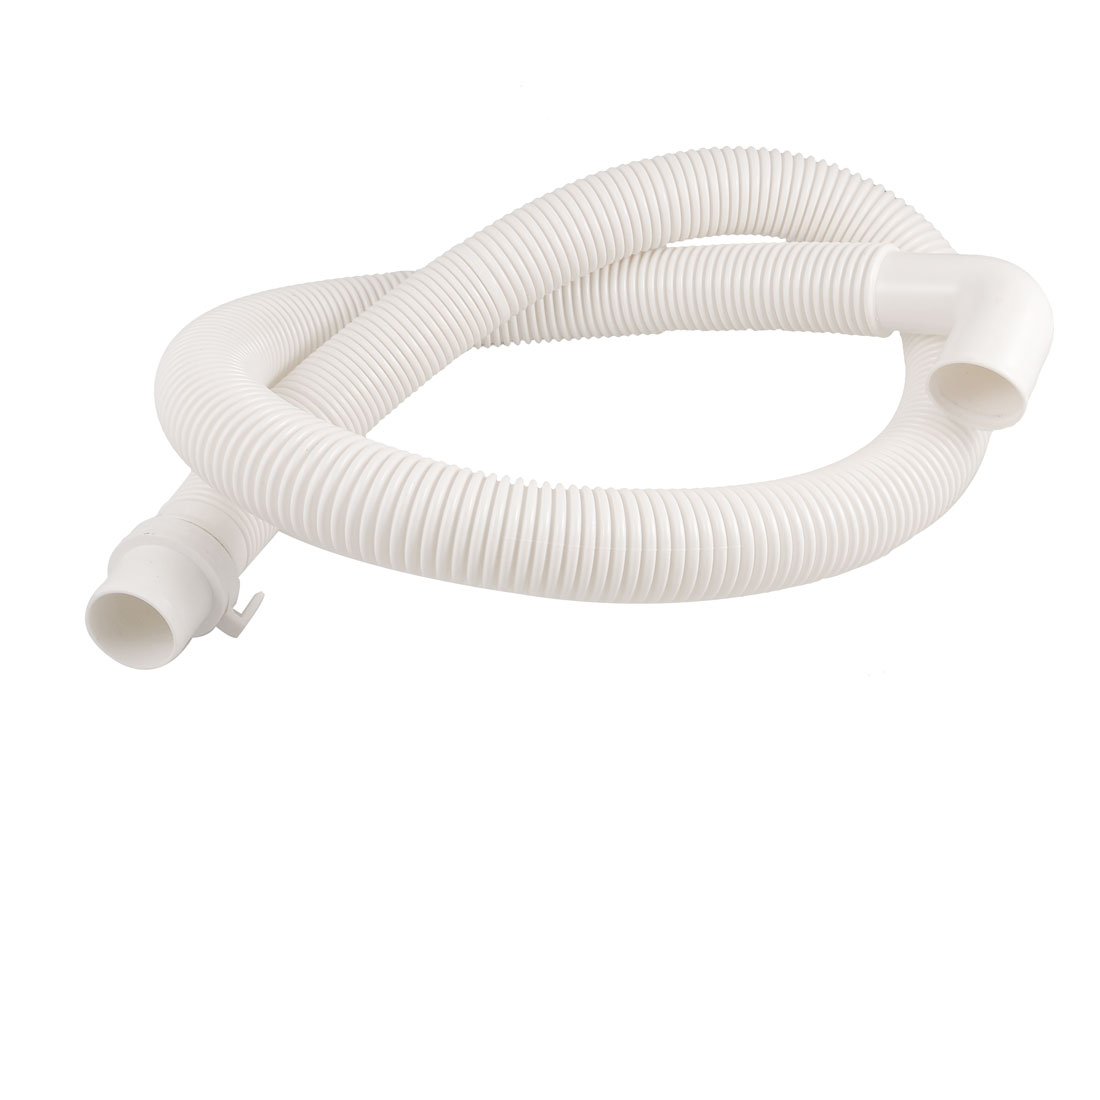 "Washing Machine Washer 49"" Long Connect Drain Hose Pipe"